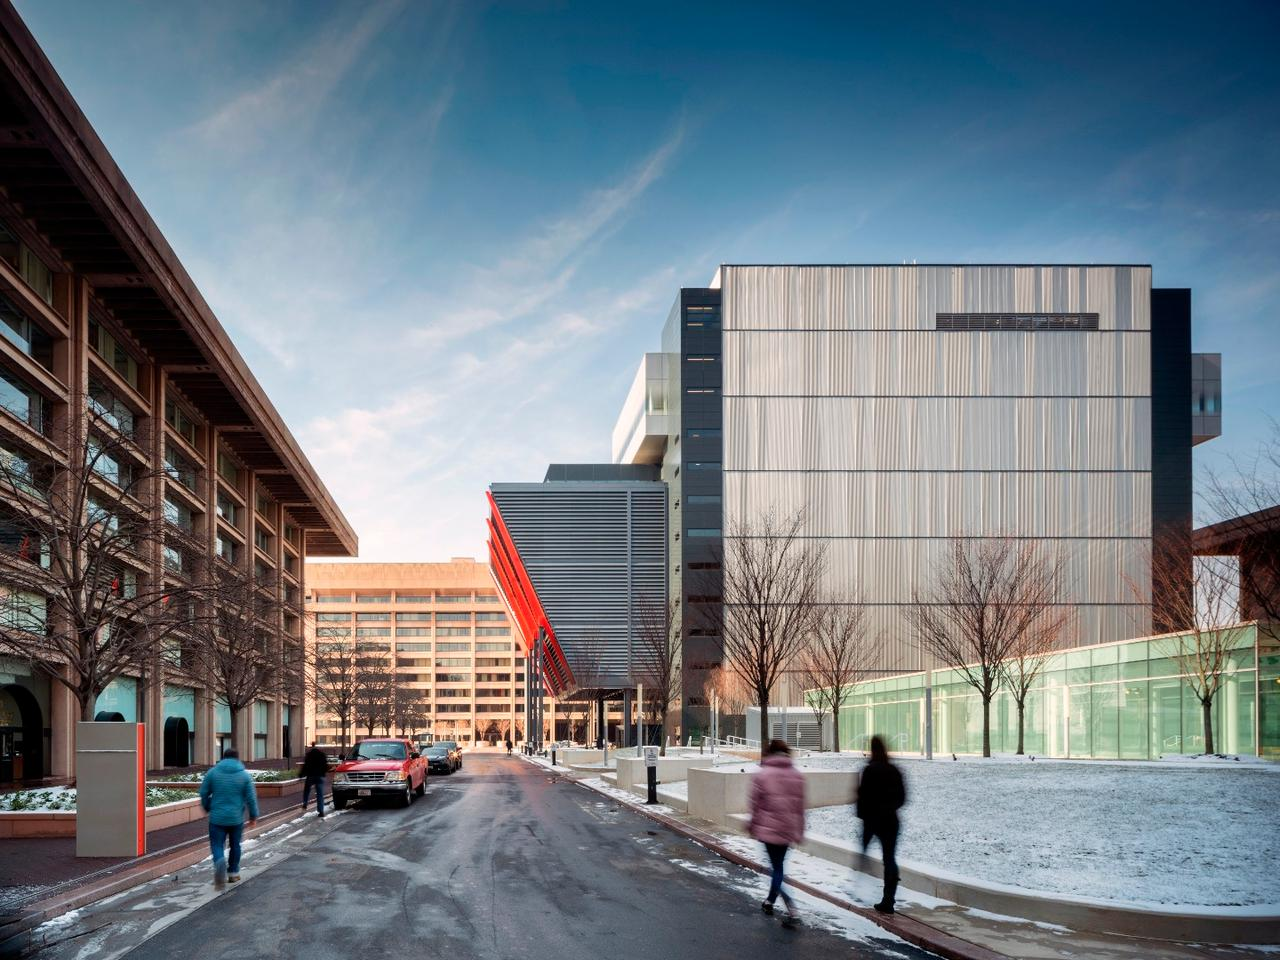 Washington DC's International Spy Museum recently moved into an all-new building, designed by Rogers Stirk Harbour + Partners, in collaboration with Hickok Cole